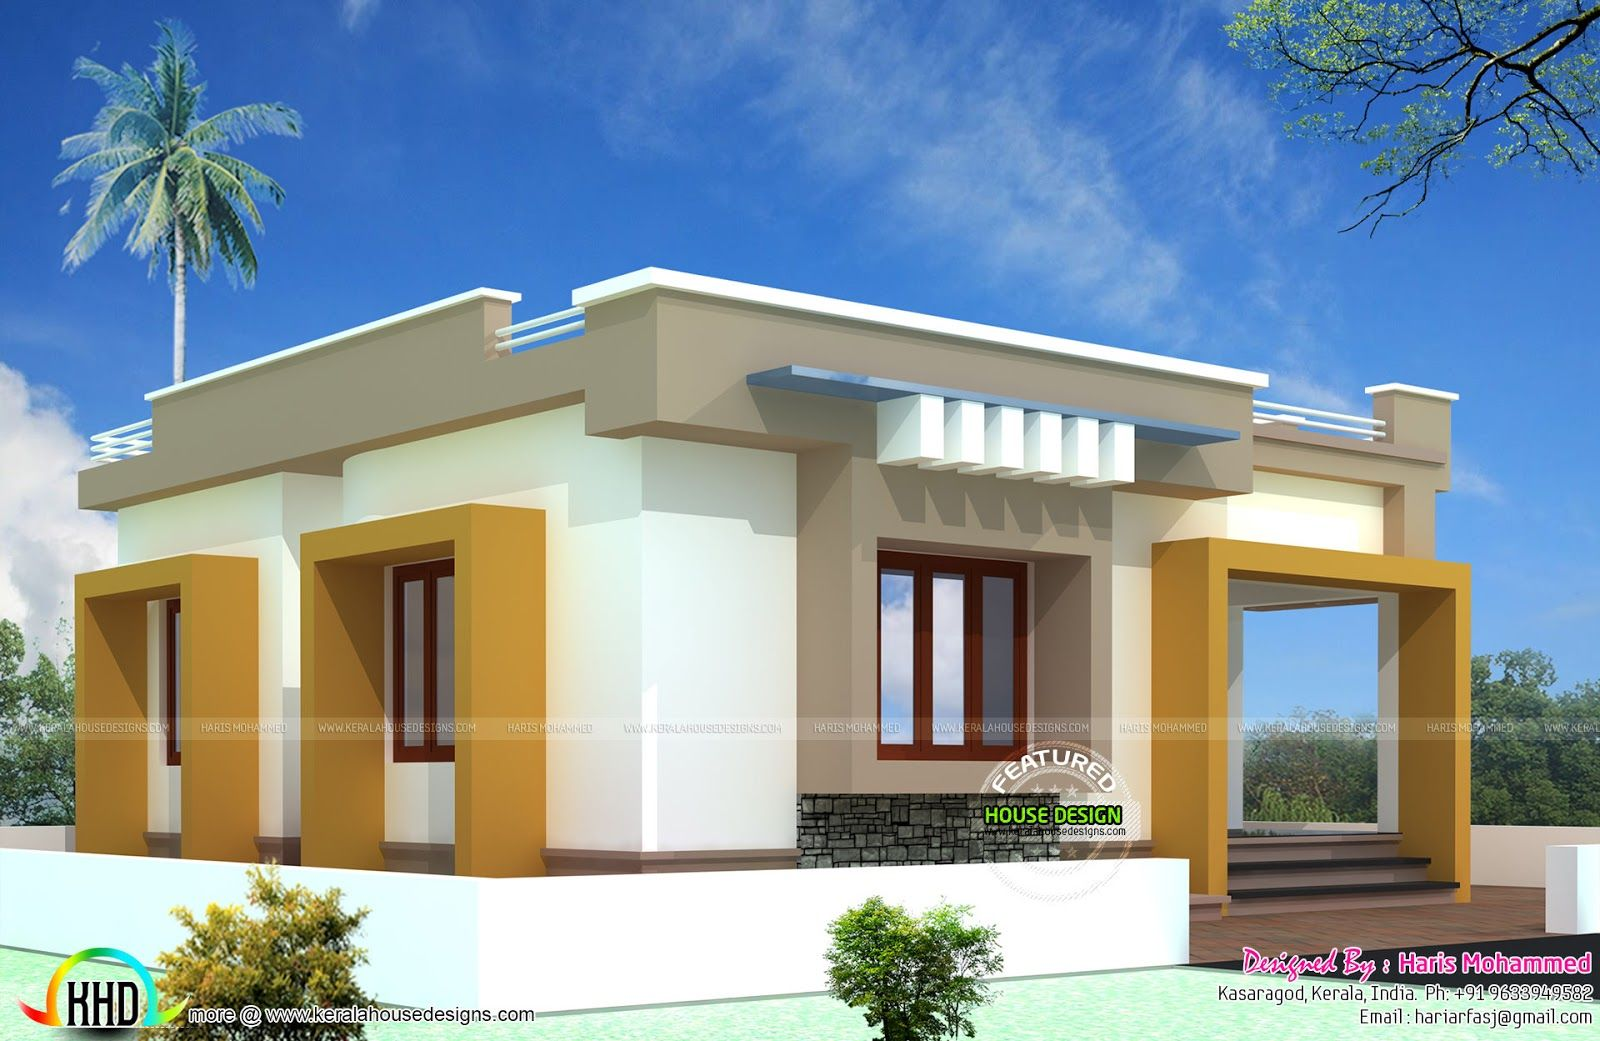 a beautiful 1 000 sq ft house built on a small bud budget home design u20b910 lakhs budget smallbudget single floor house in an area of 812 square  feet by Haris Mohammed, Kasaragod, Kerala.